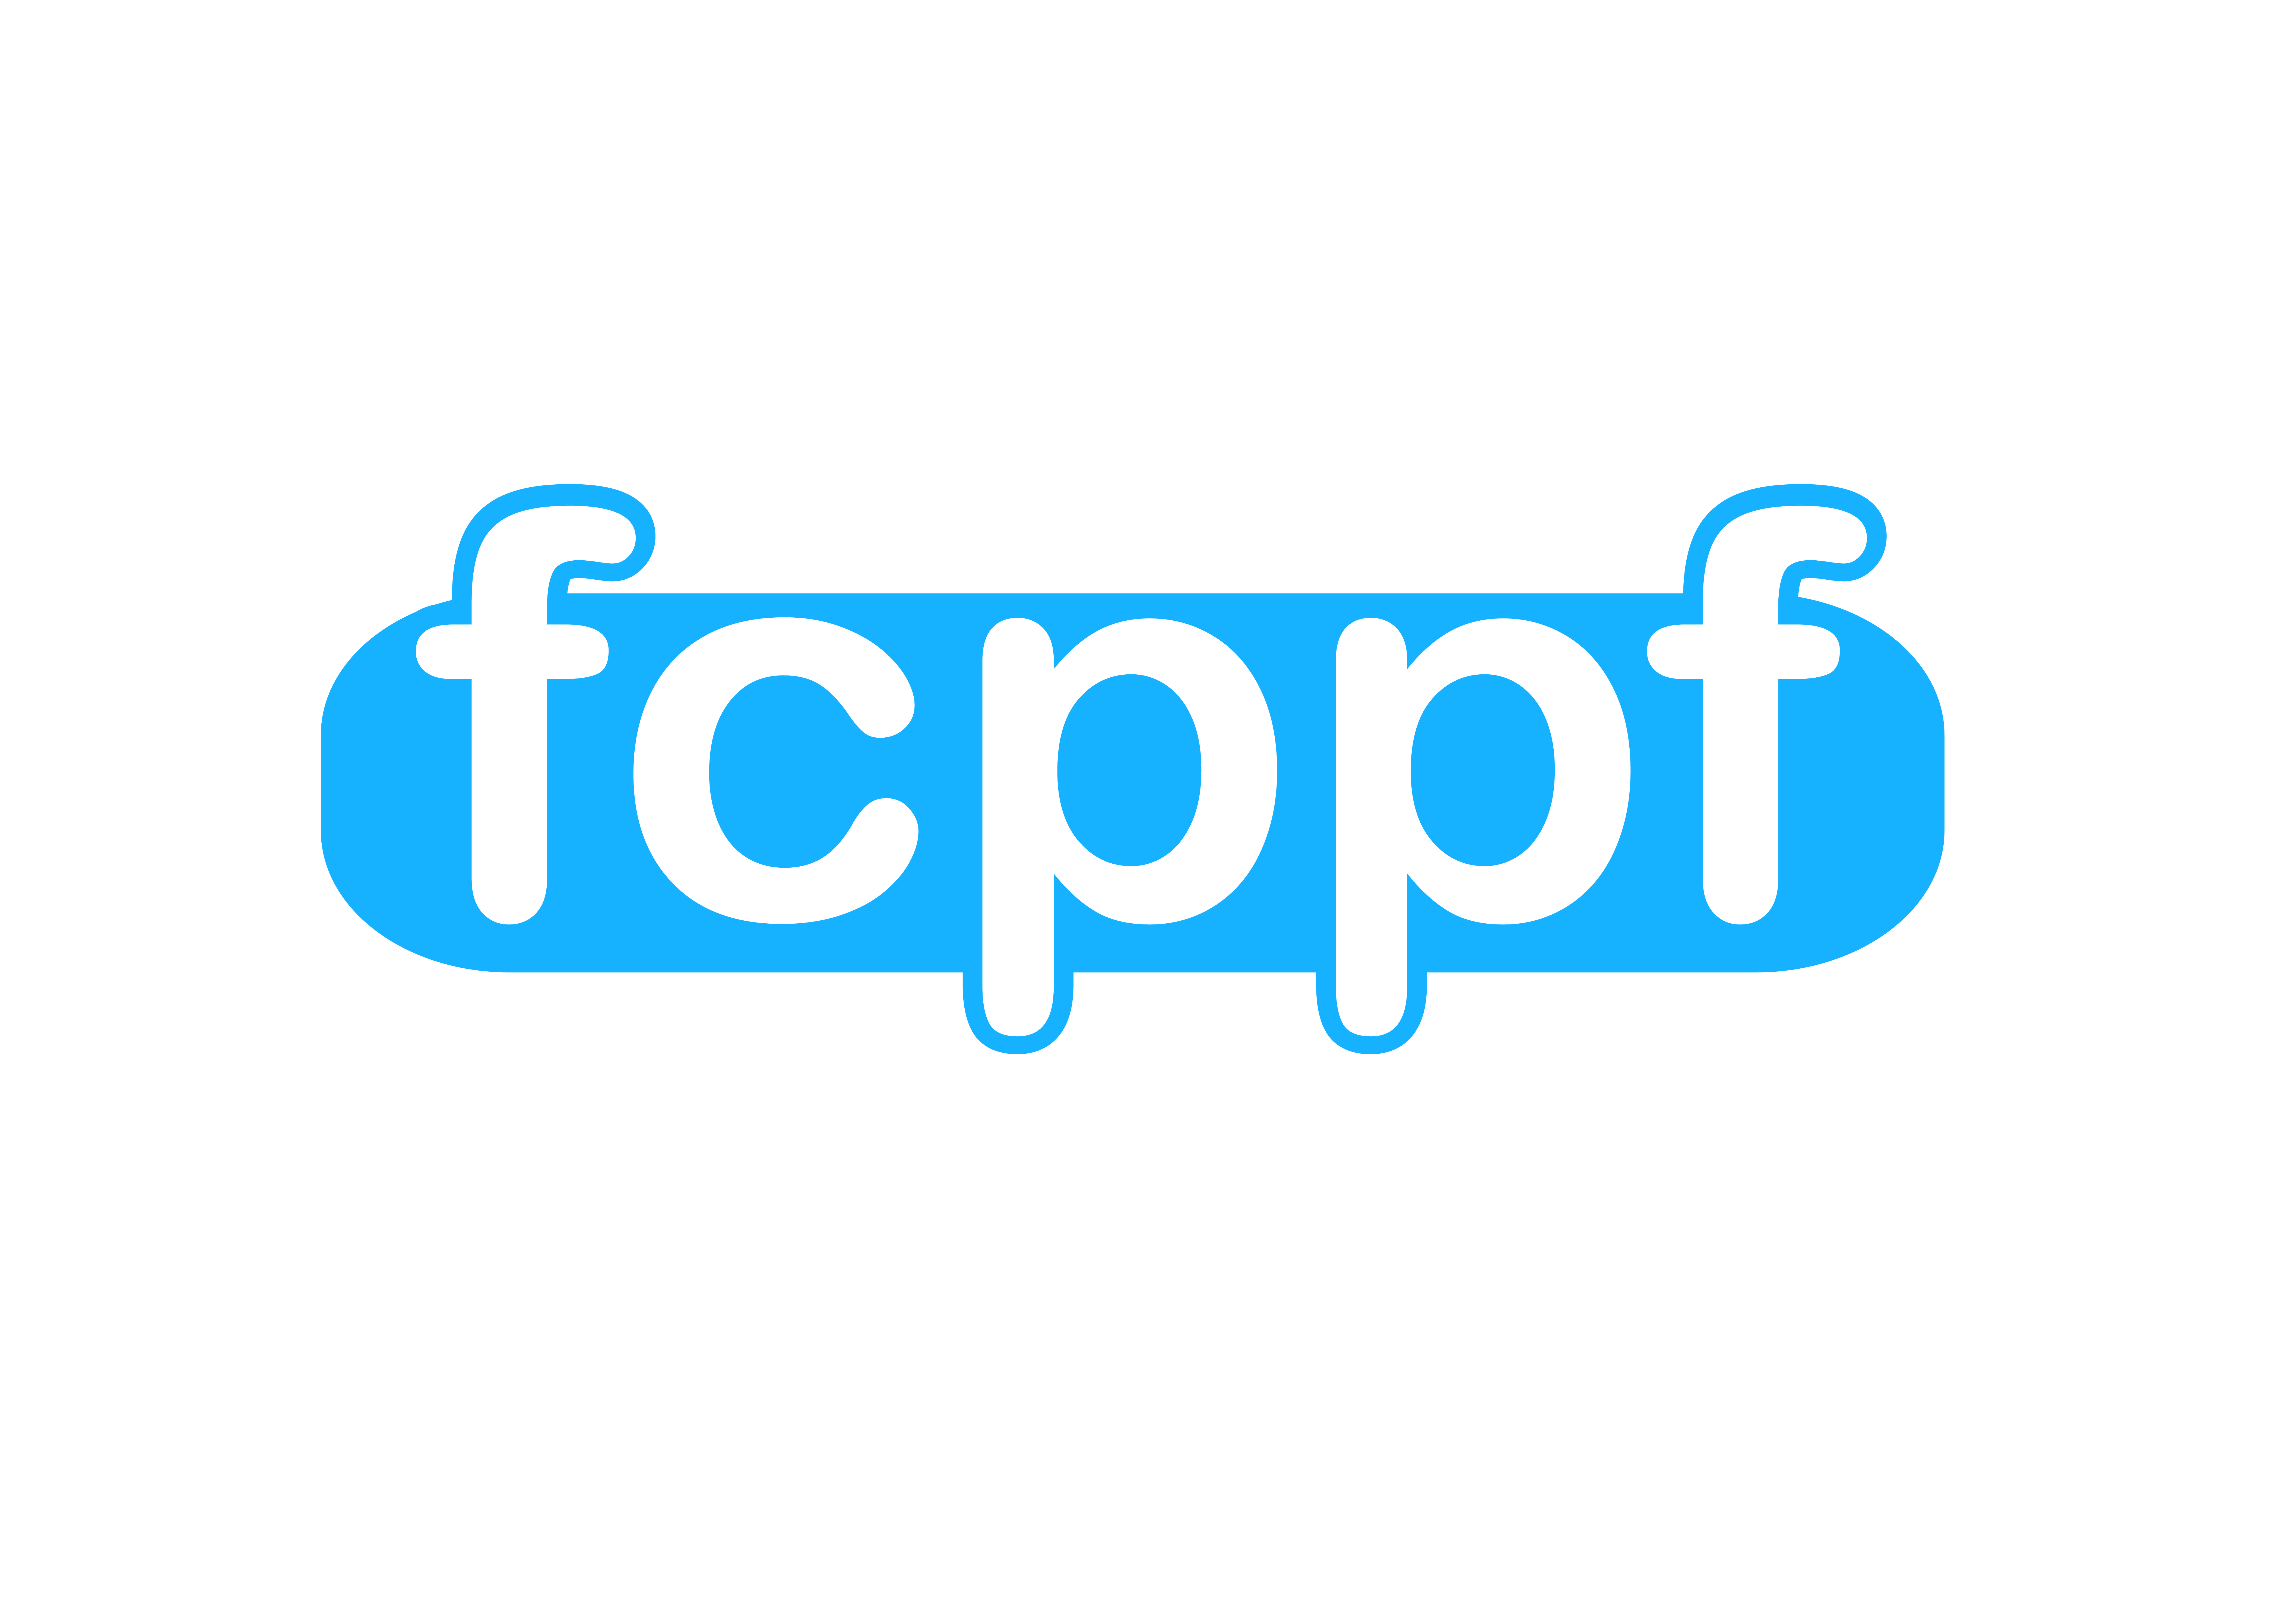 FCPPF